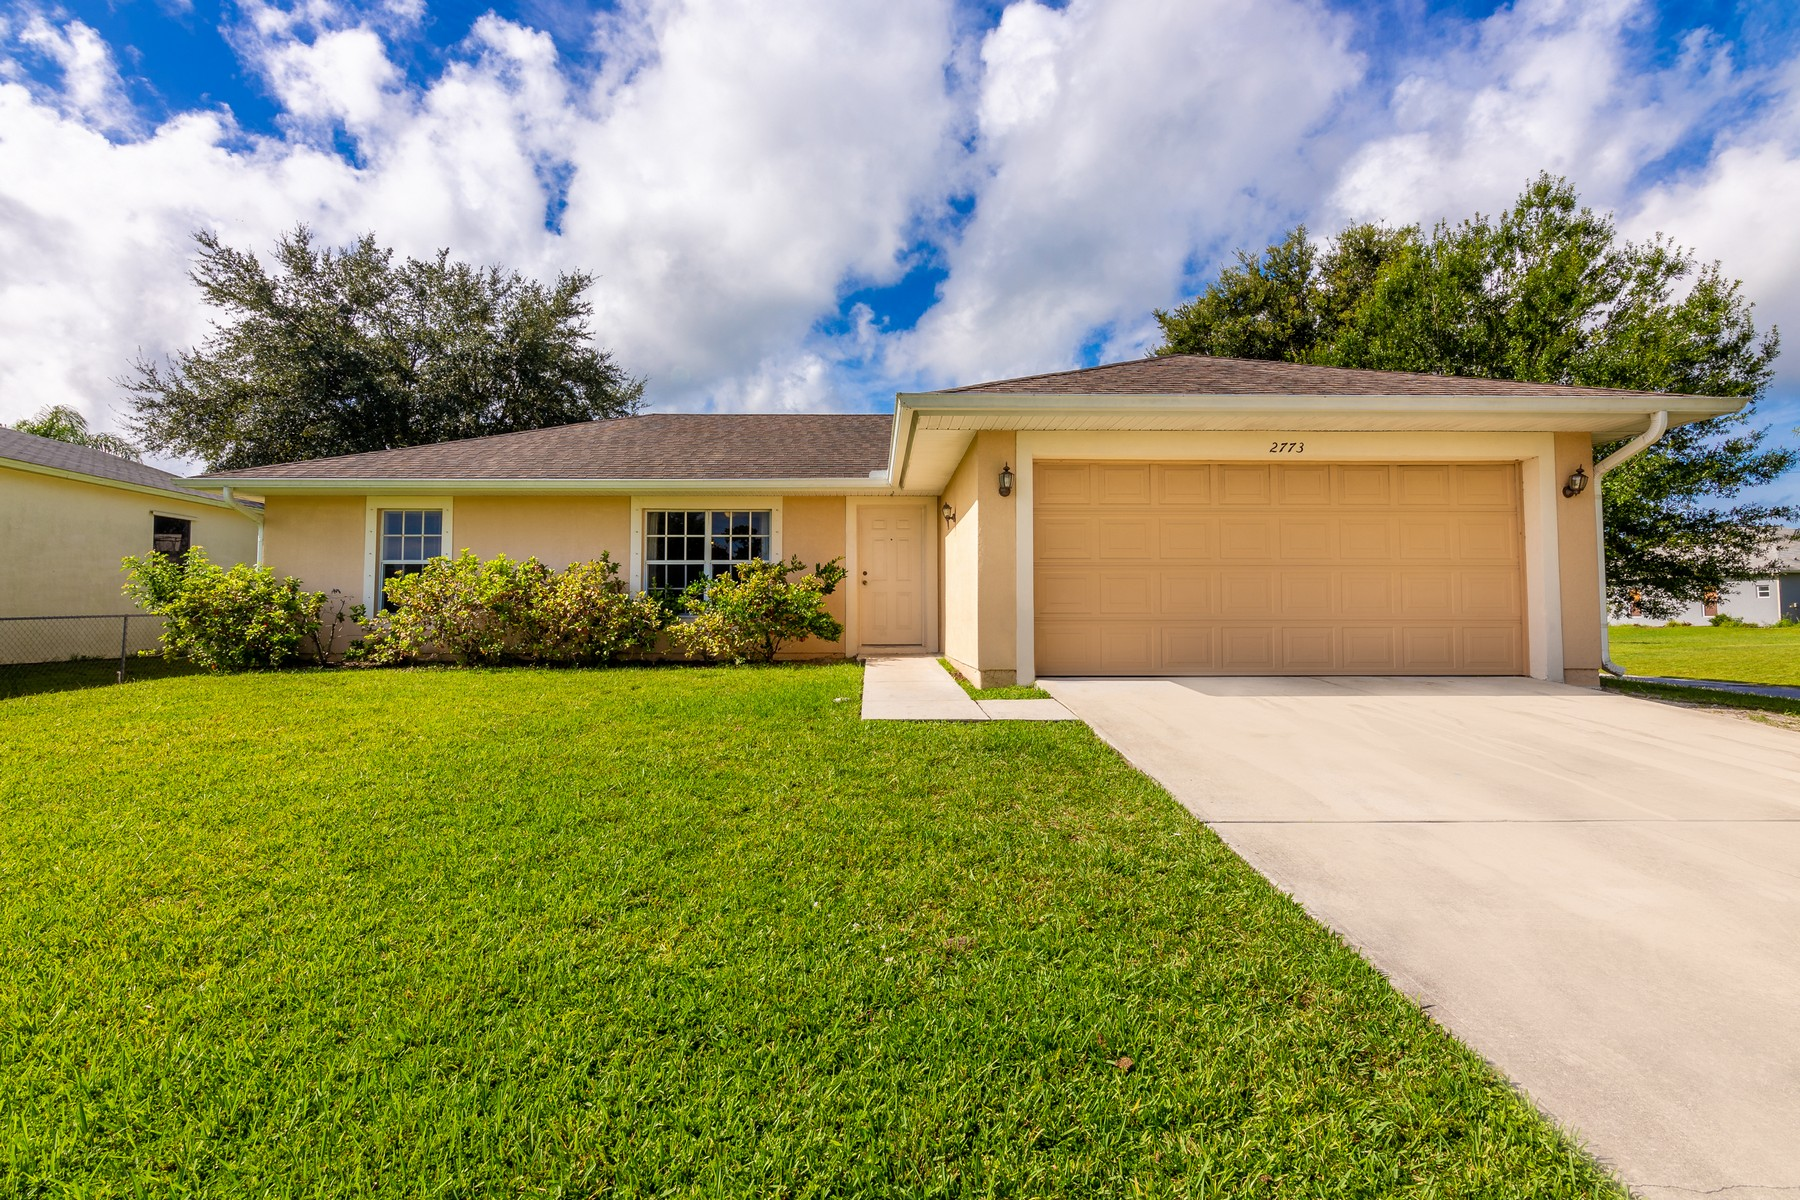 Property for Sale at Live the Florida Dream! 2773 San Filippo Dr SE Palm Bay, Florida 32909 United States